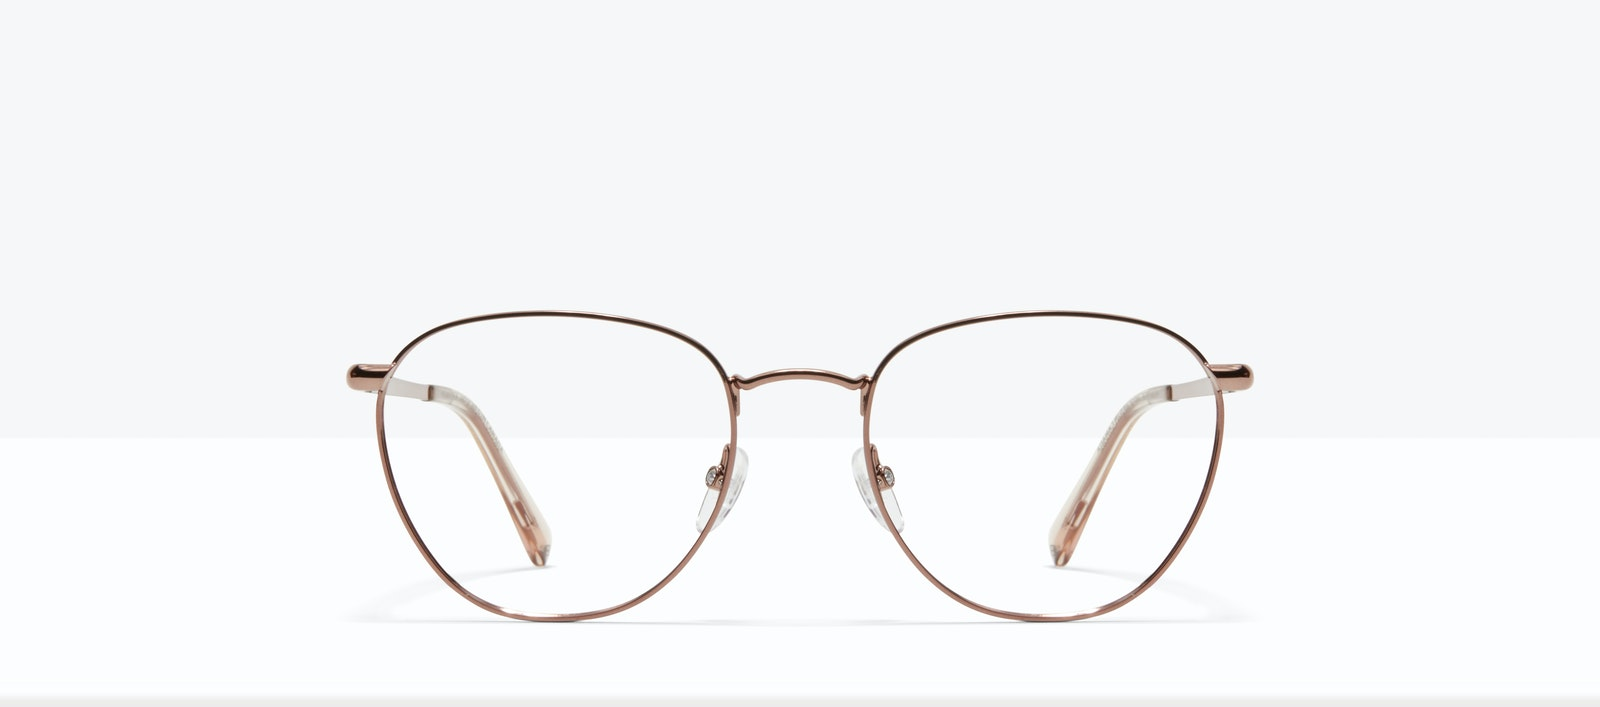 Affordable Fashion Glasses Round Eyeglasses Women Radiant L Copper Front